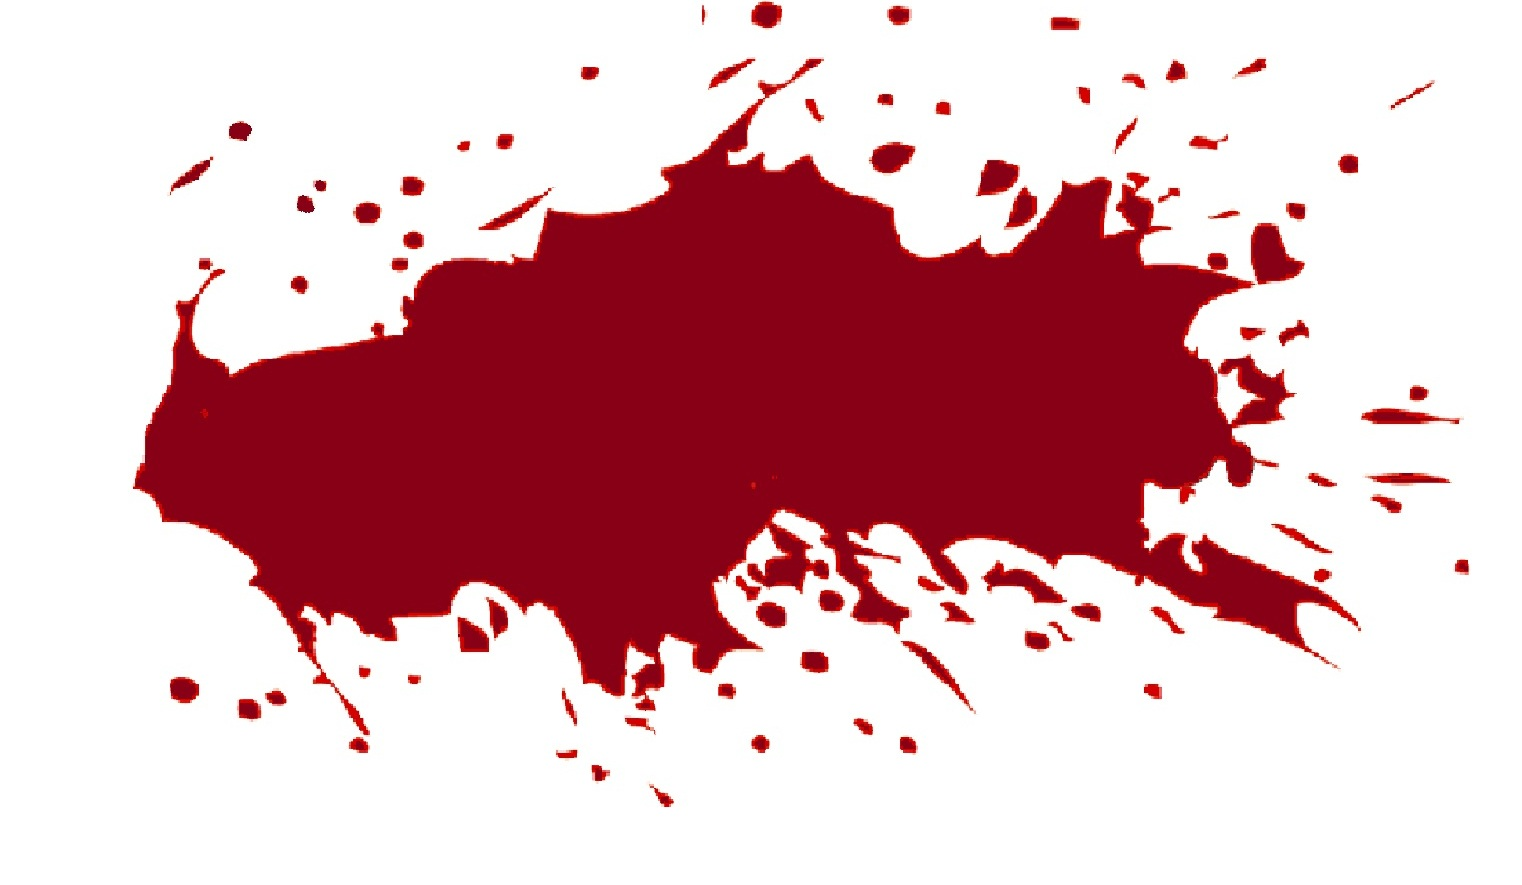 Blood Splatter Clipart Cliparts Co-Blood Splatter Clipart Cliparts Co-15